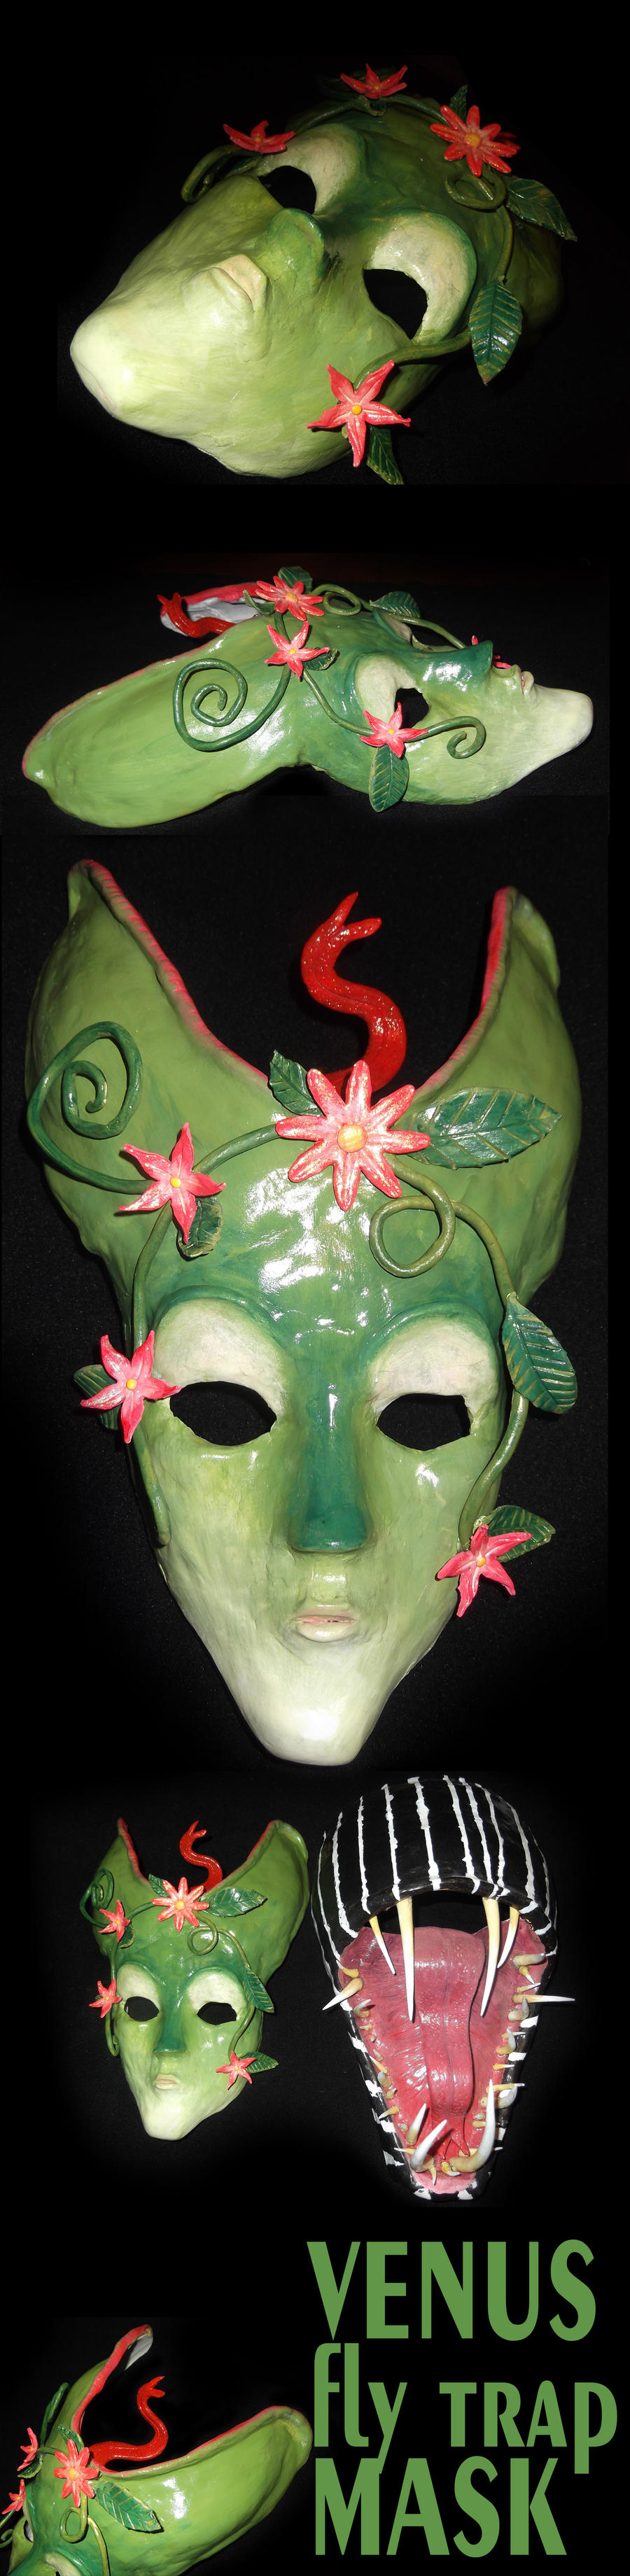 Venus Fly Trap Mask by Transformergirl